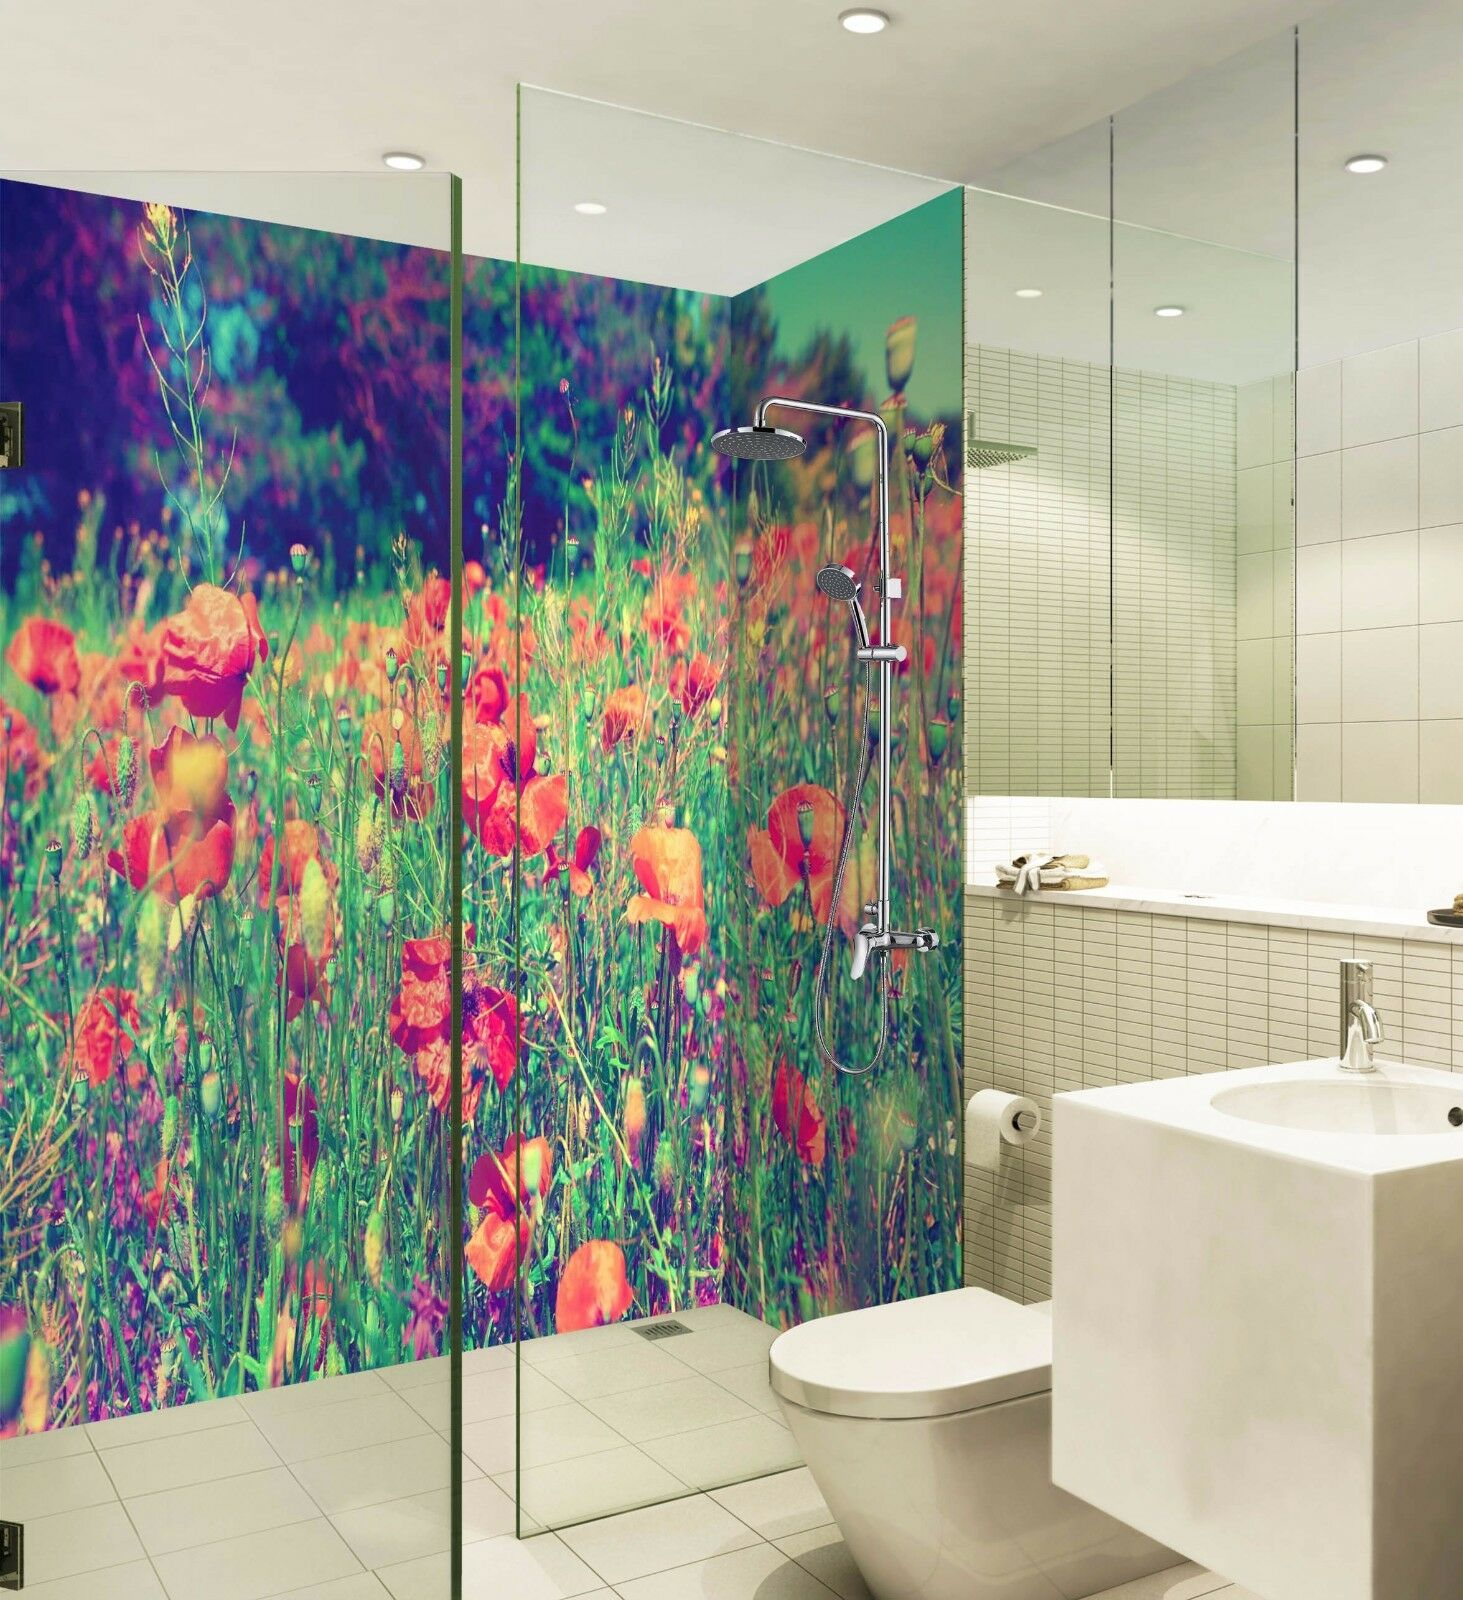 3D Grass flowers 623 WallPaper Bathroom Print Decal Wall Deco AJ WALLPAPER UK